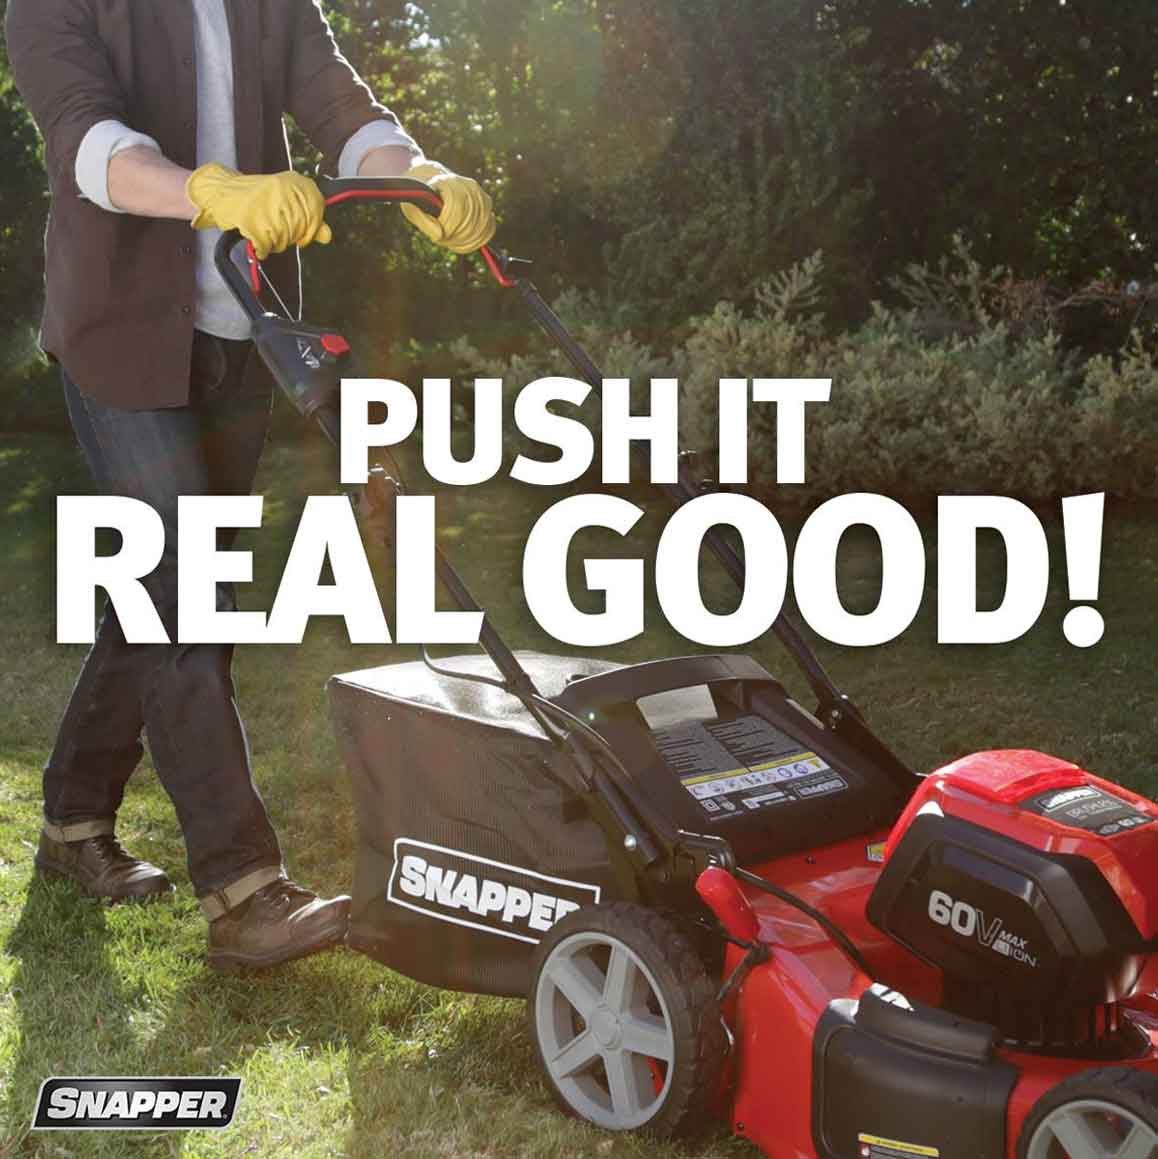 Man wearing dark denim jeans and a brown blazer pushing a red Snapper mower over green grass. White copy on the image reads Push It Real Good.